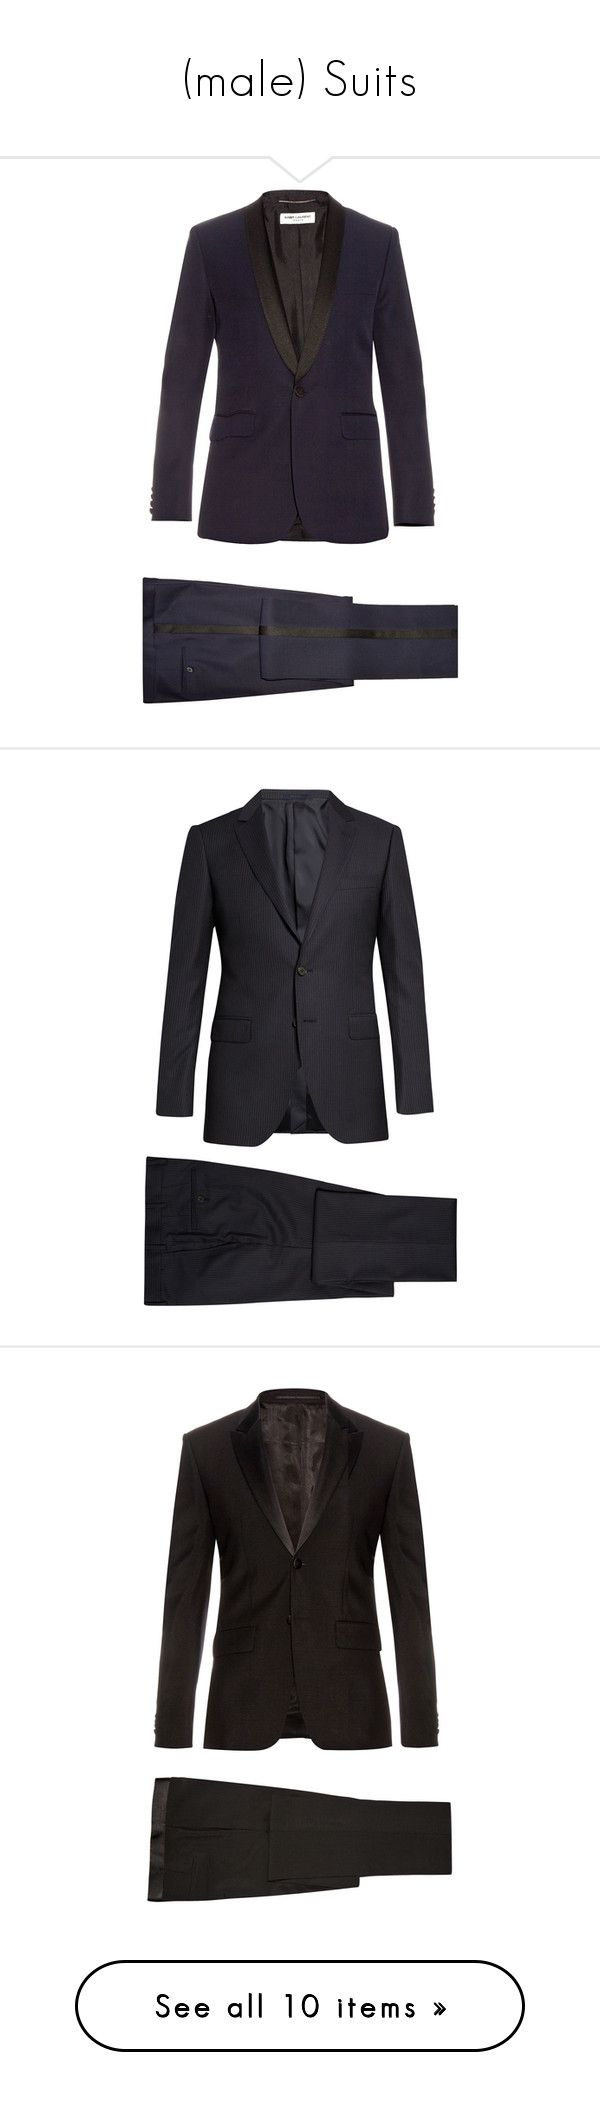 """(male) Suits"" by unicornsxxx ❤ liked on Polyvore featuring men's fashion, men's clothing, men's suits, mens slim suits, mens navy slim fit suit, mens navy suit, mens navy blue suit, mens tailored suits, outerwear and mens slim fit suits"